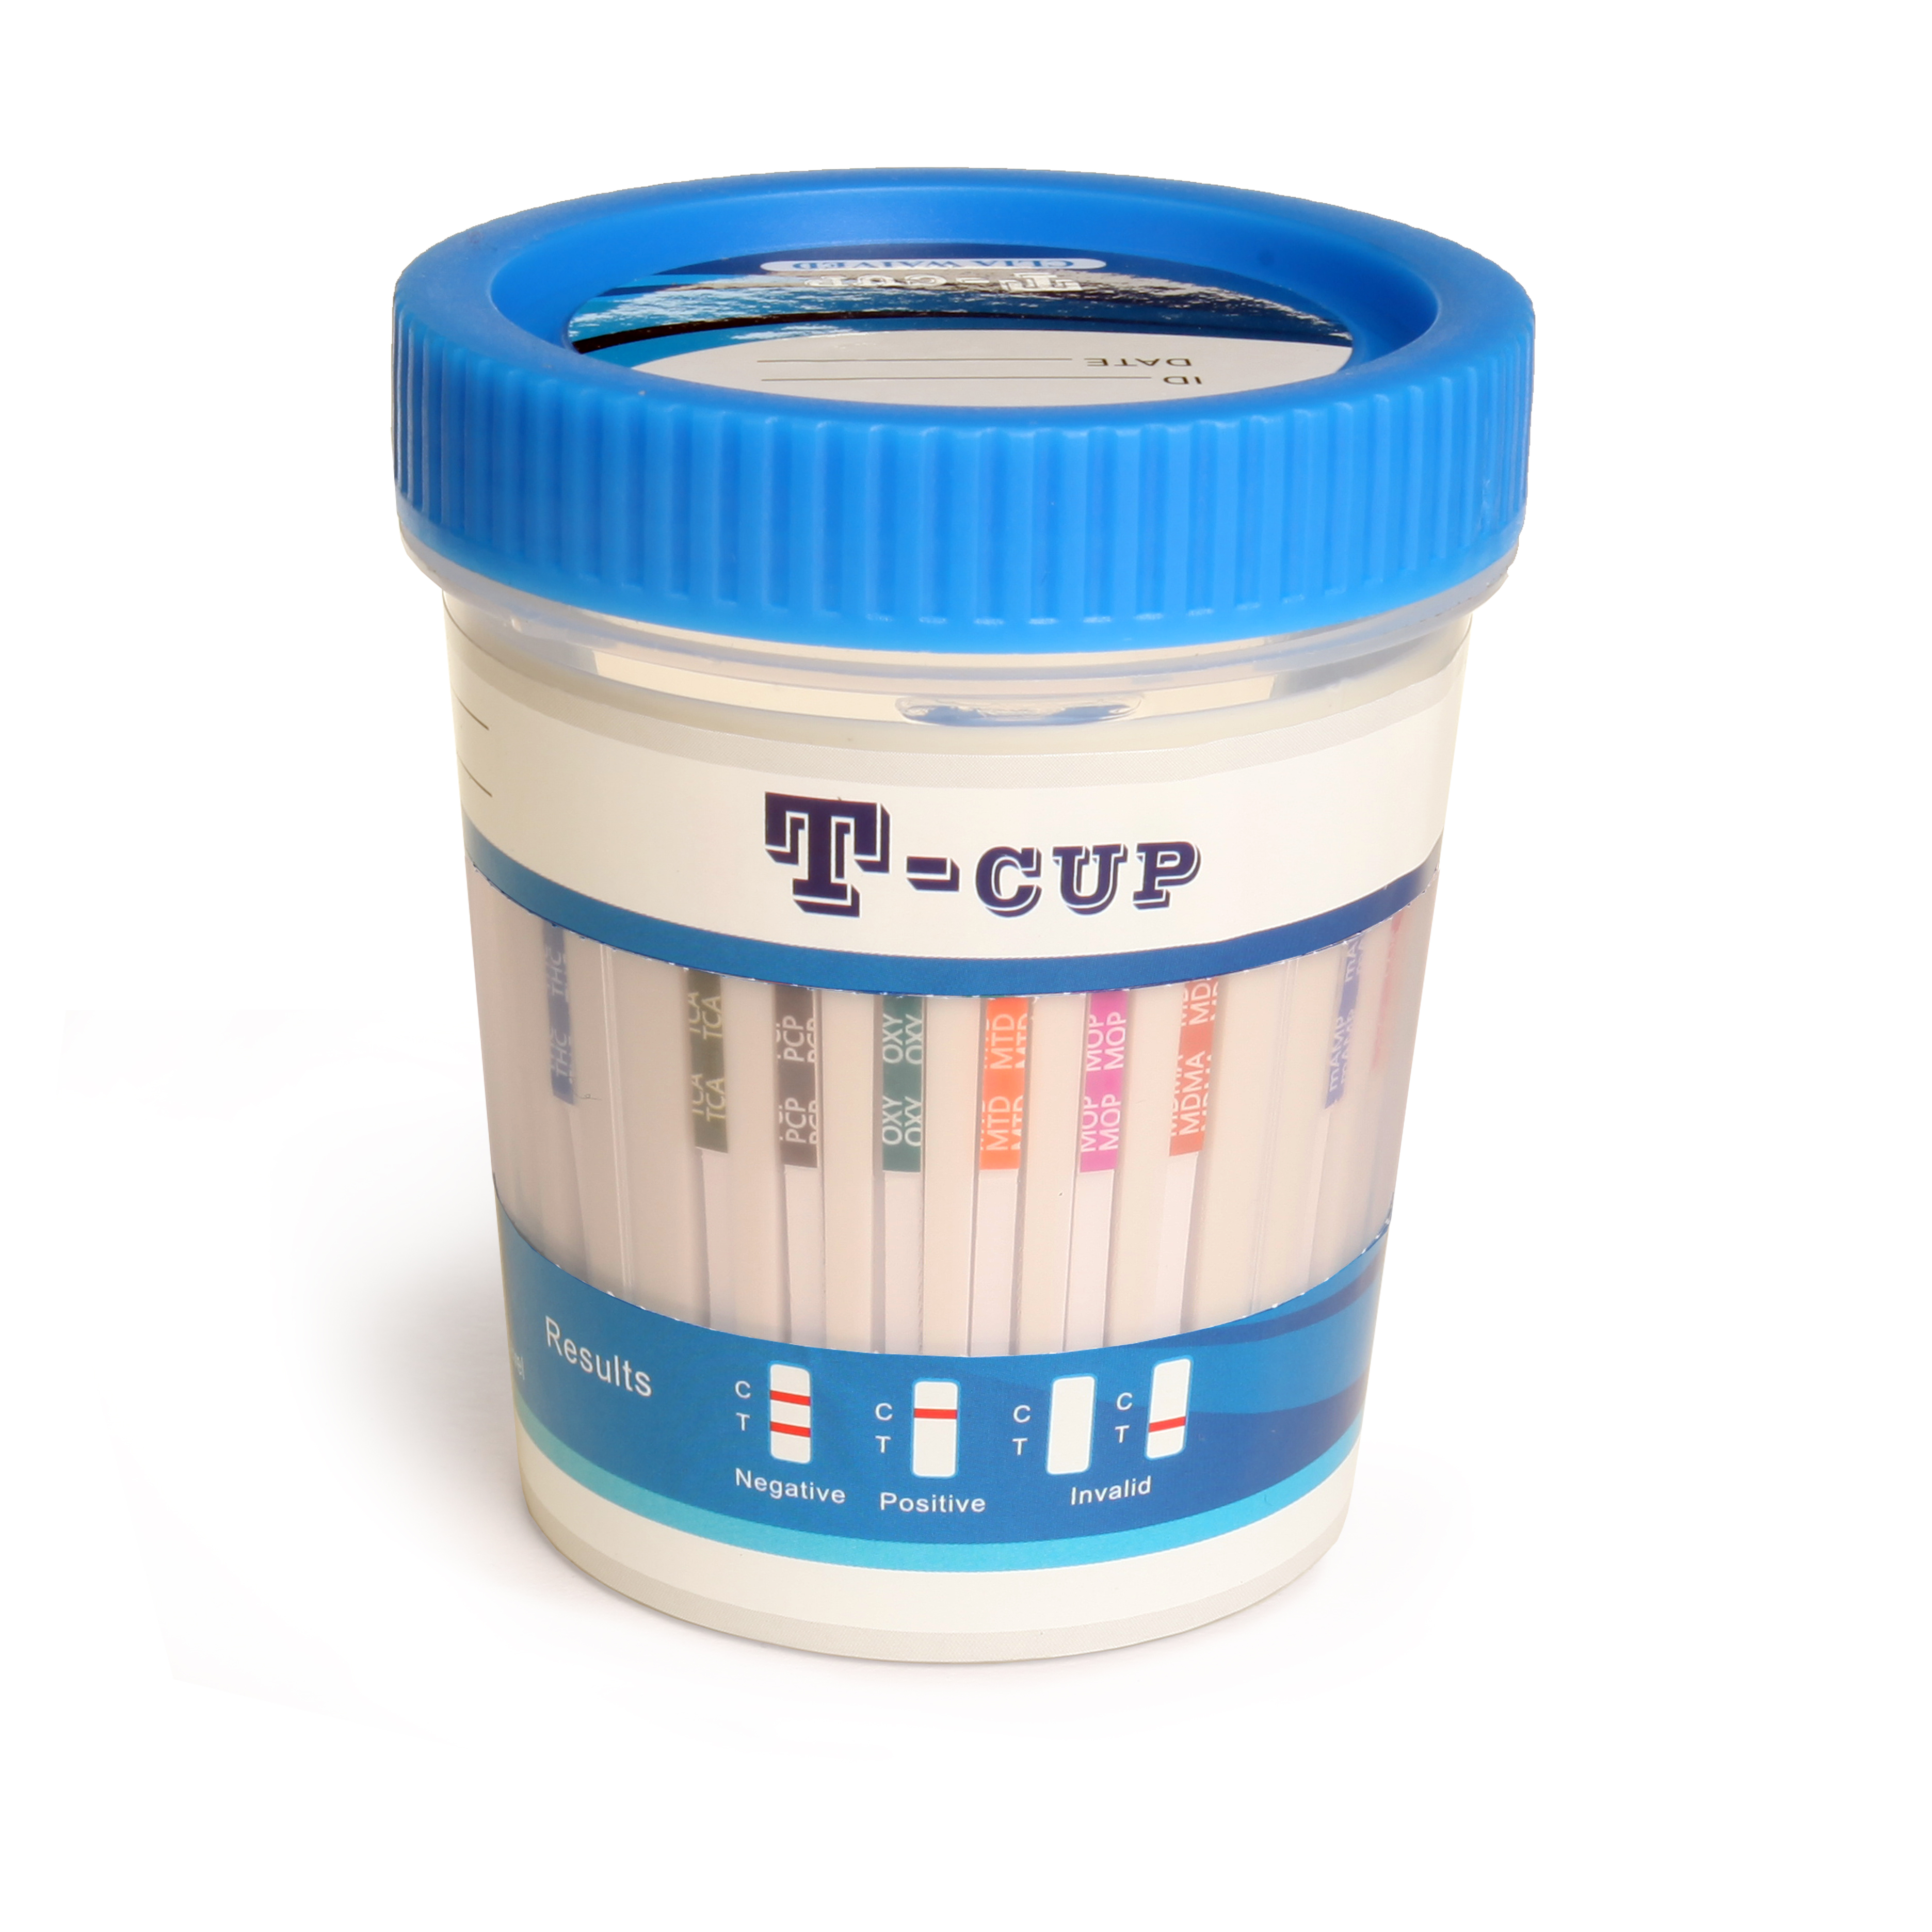 12 Panel Clia Waived T Cup Drug Screen Test With Adulterants